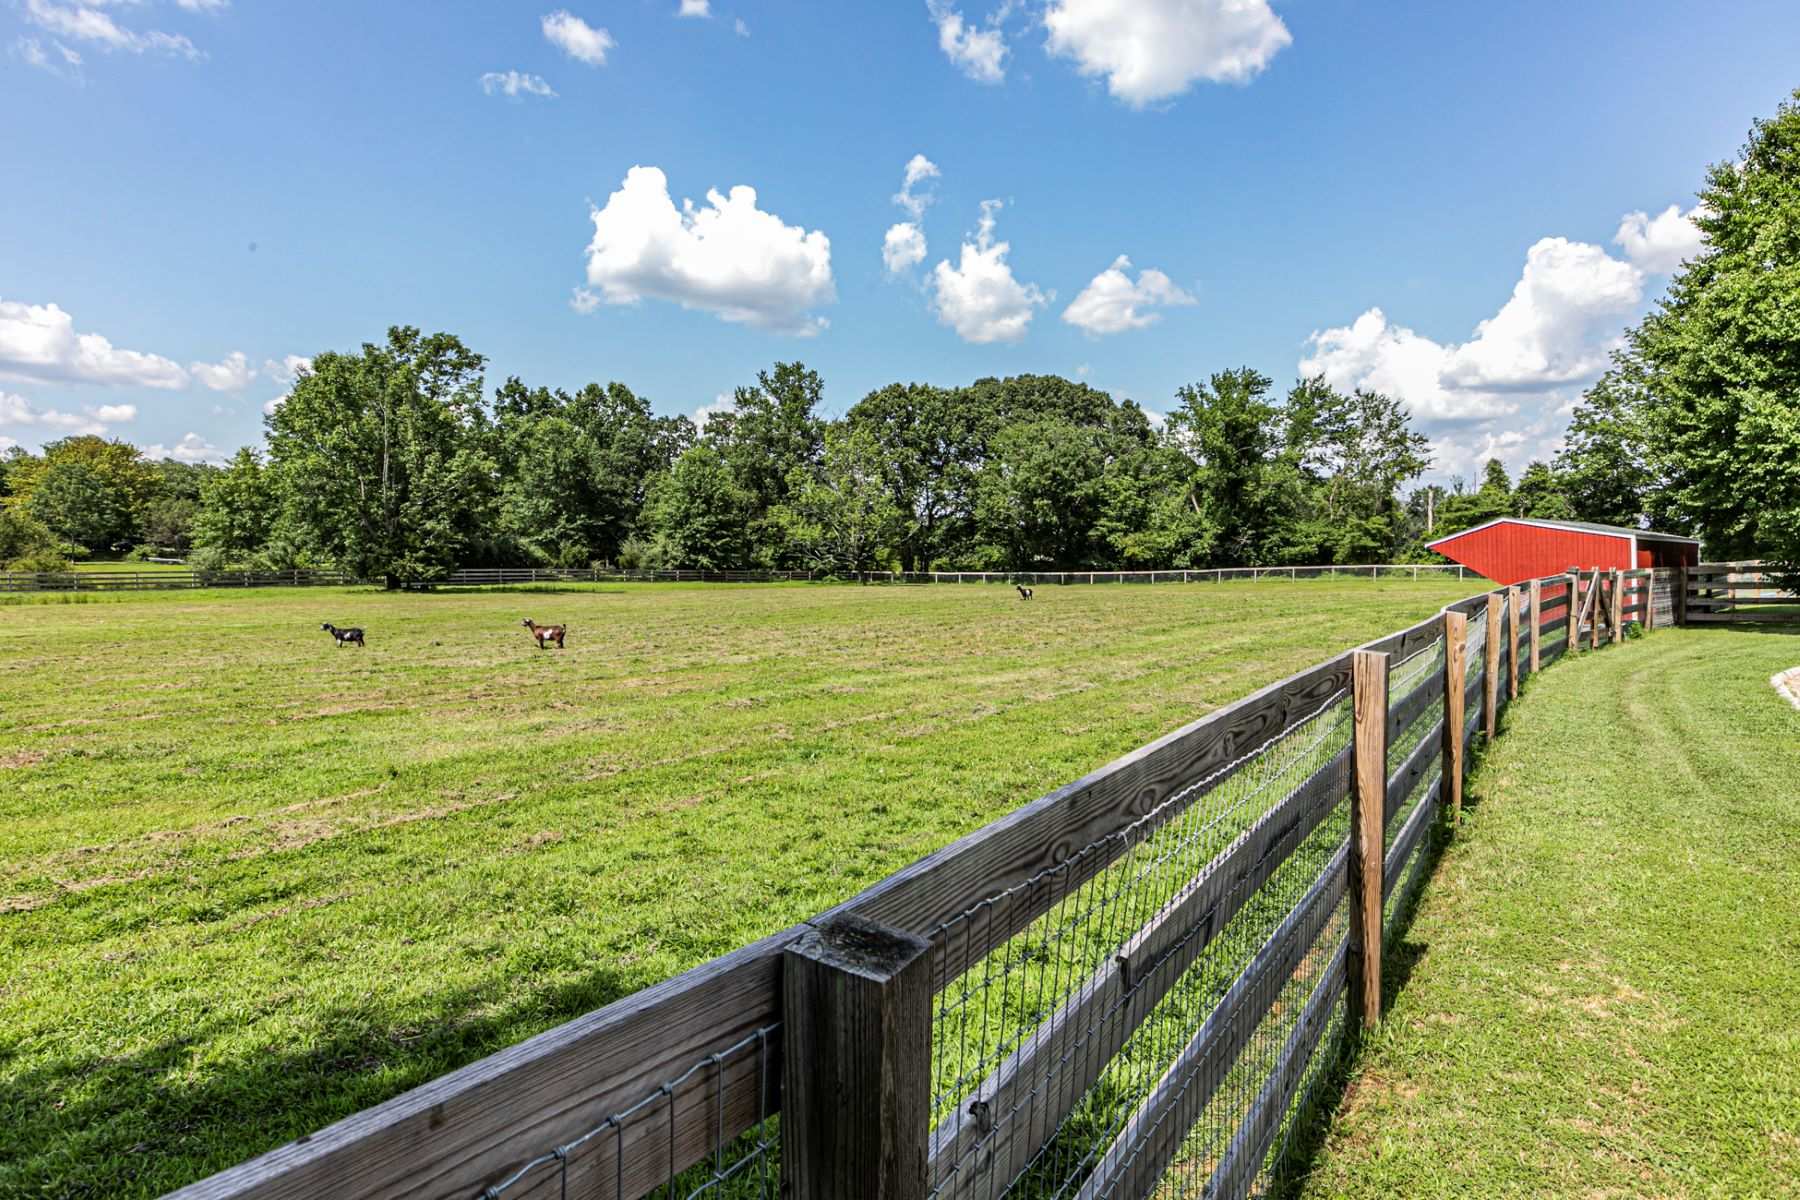 Additional photo for property listing at Your Very Own Gentleman's Farm Just Beyond The Borough 131 Hopewell Wertsville Road, Hopewell, New Jersey 08525 United States